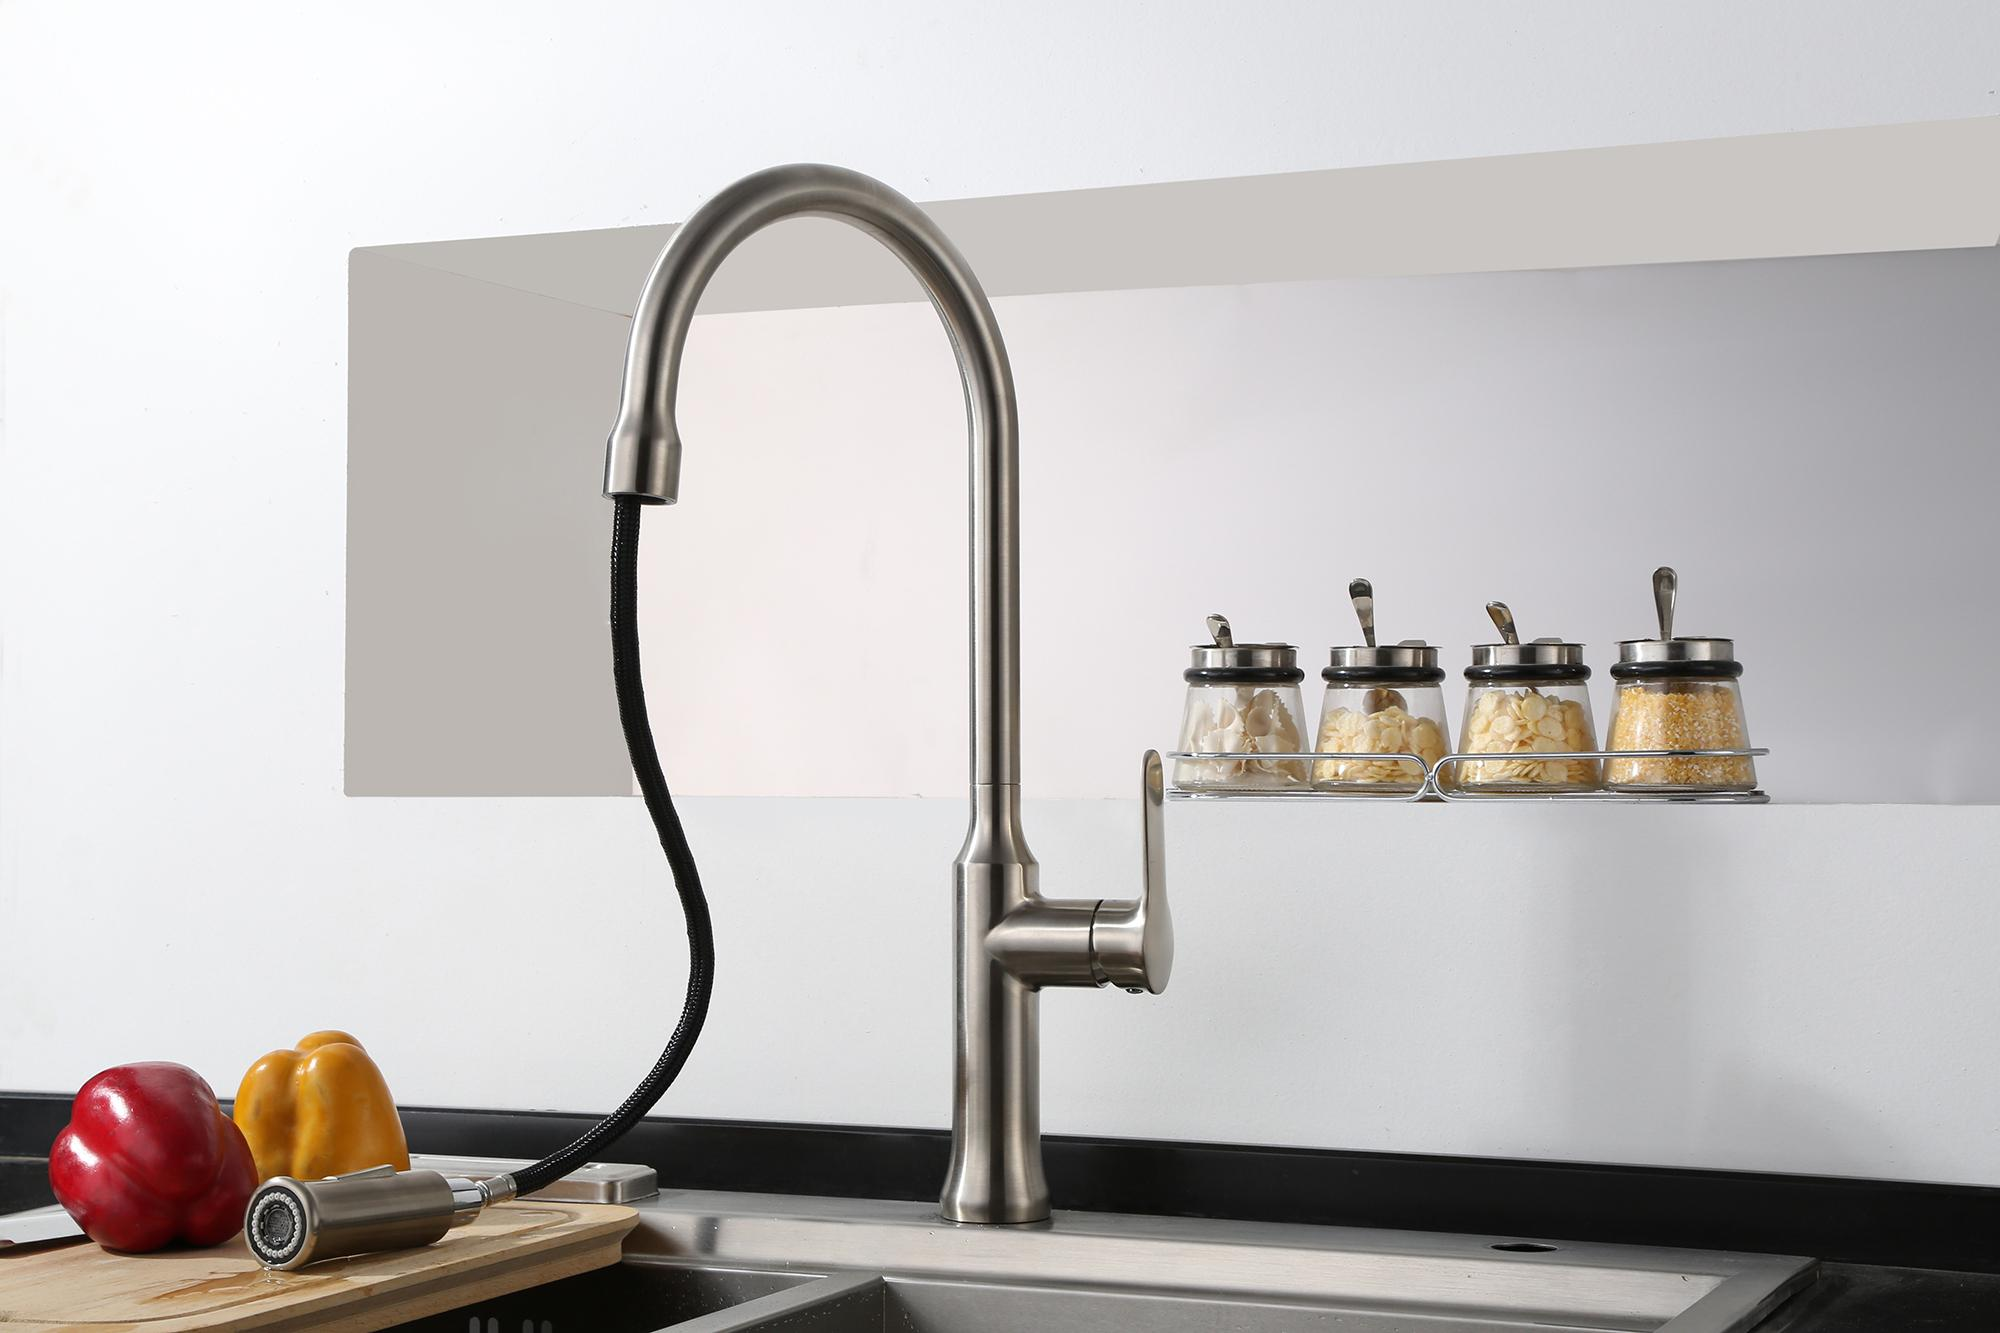 New Style Pull Out Kitchen Faucet Modern Shower And Water Ways Kitchen Taps 4